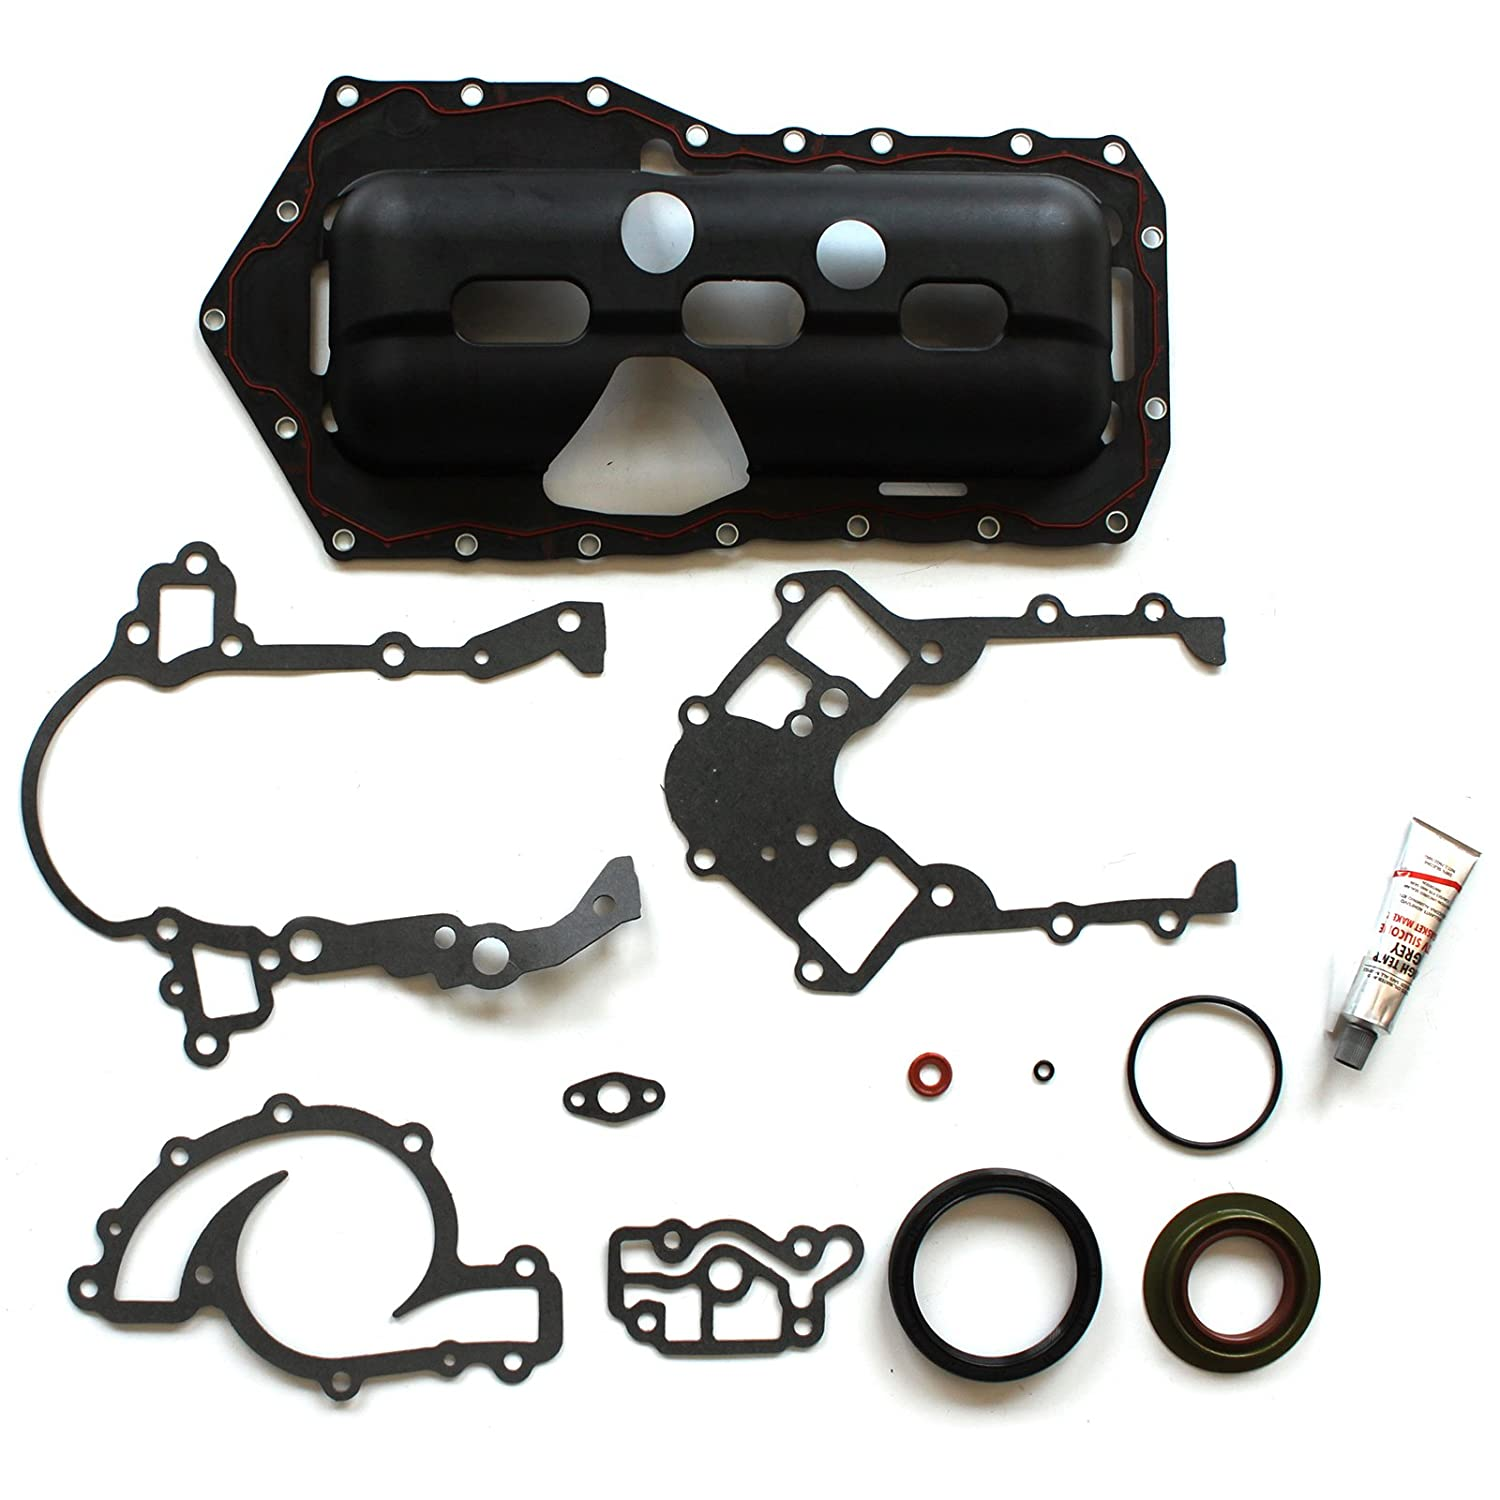 SCITOO Replacement for Oil Pan Gasket Kit fit Chevrolet Camaro Pontiac Buick Oldsmobile 3.8L V6 1995-2003 Automotive Oil Pan Gaskets Sets